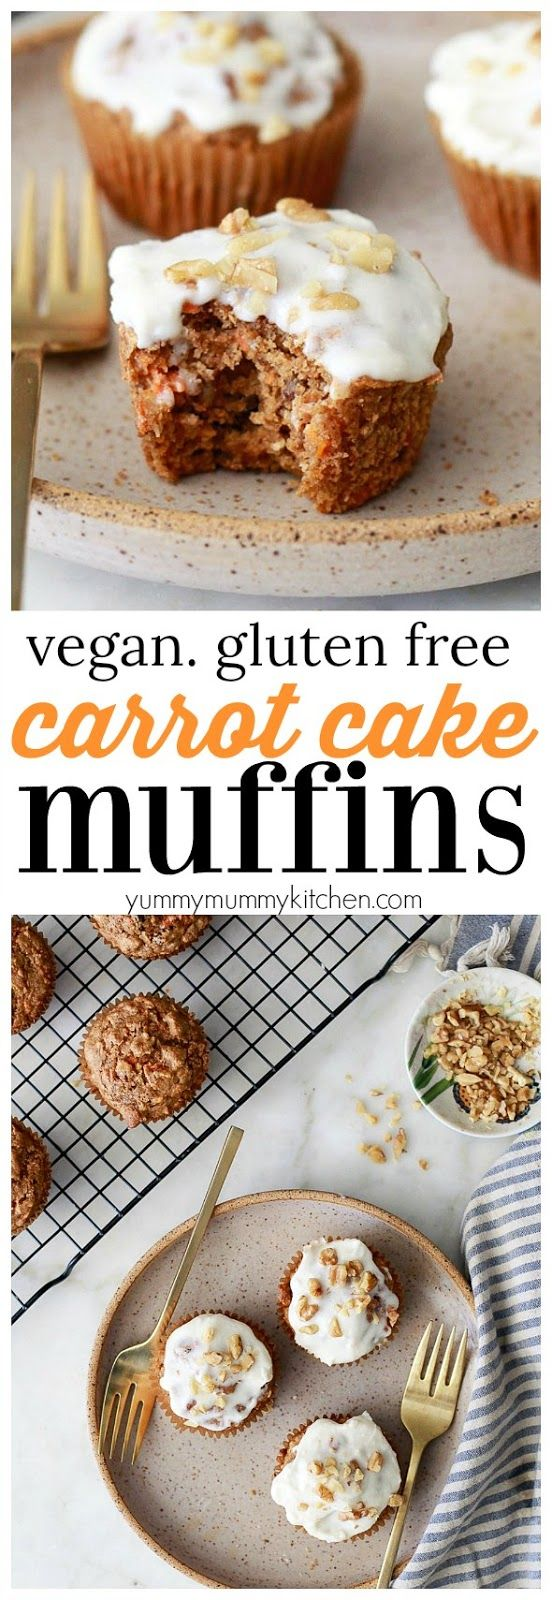 The most delicious gluten free carrot muffins. These easy muffins are made in the blender. They're made with healthy ingredients like oat flour and maple syrup. These carrot muffins are dairy-free, oil-free, gluten-free, and vegan!